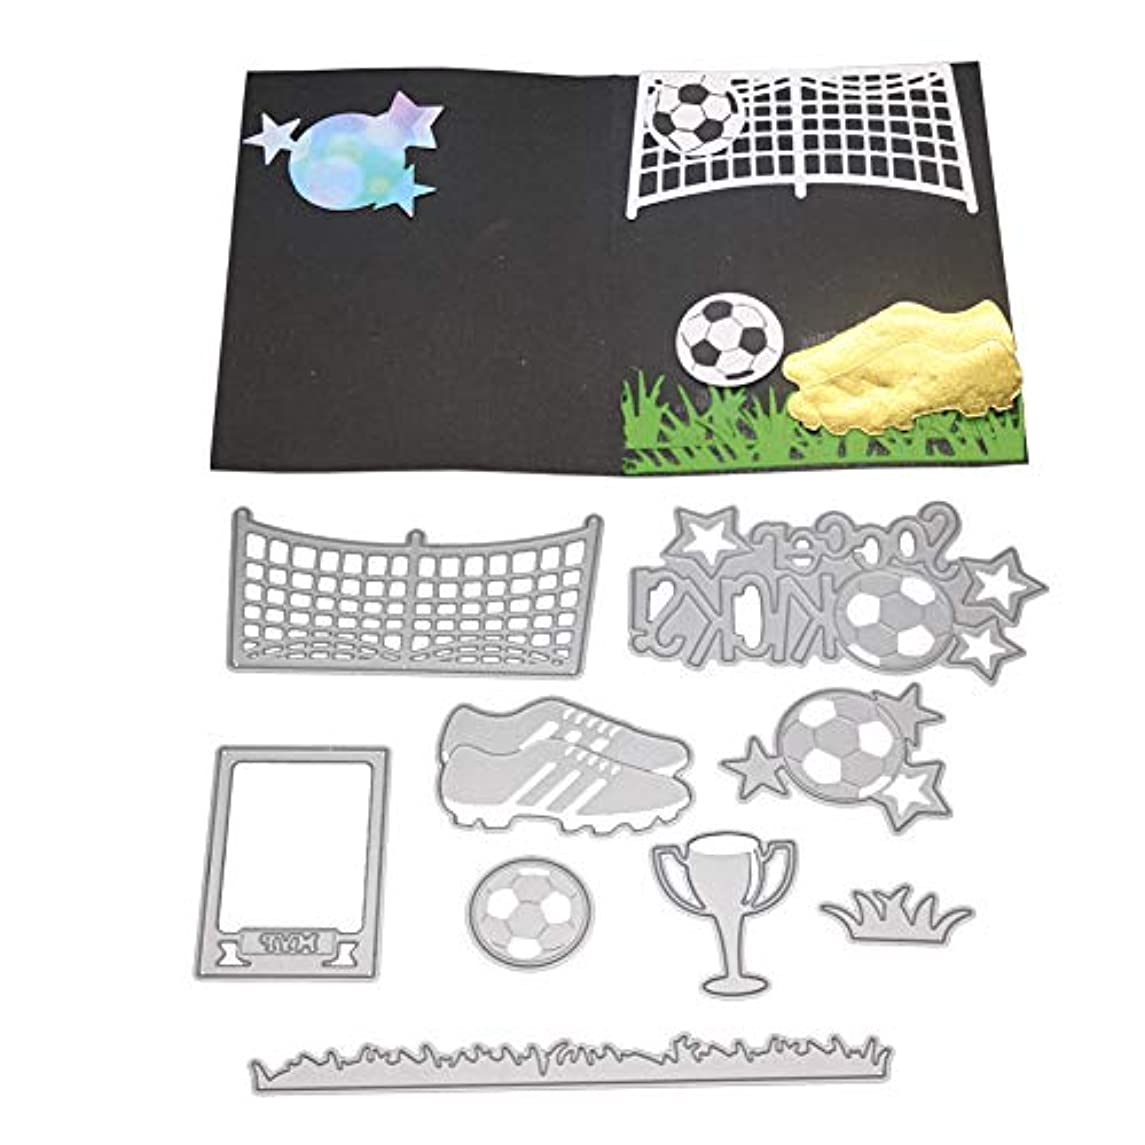 2019 Newest Happy Metal Die Cutting Dies Handmade Stencils Template Embossing for DIY Card Scrapbooking Craft Paper Decor by E-Scenery (C)